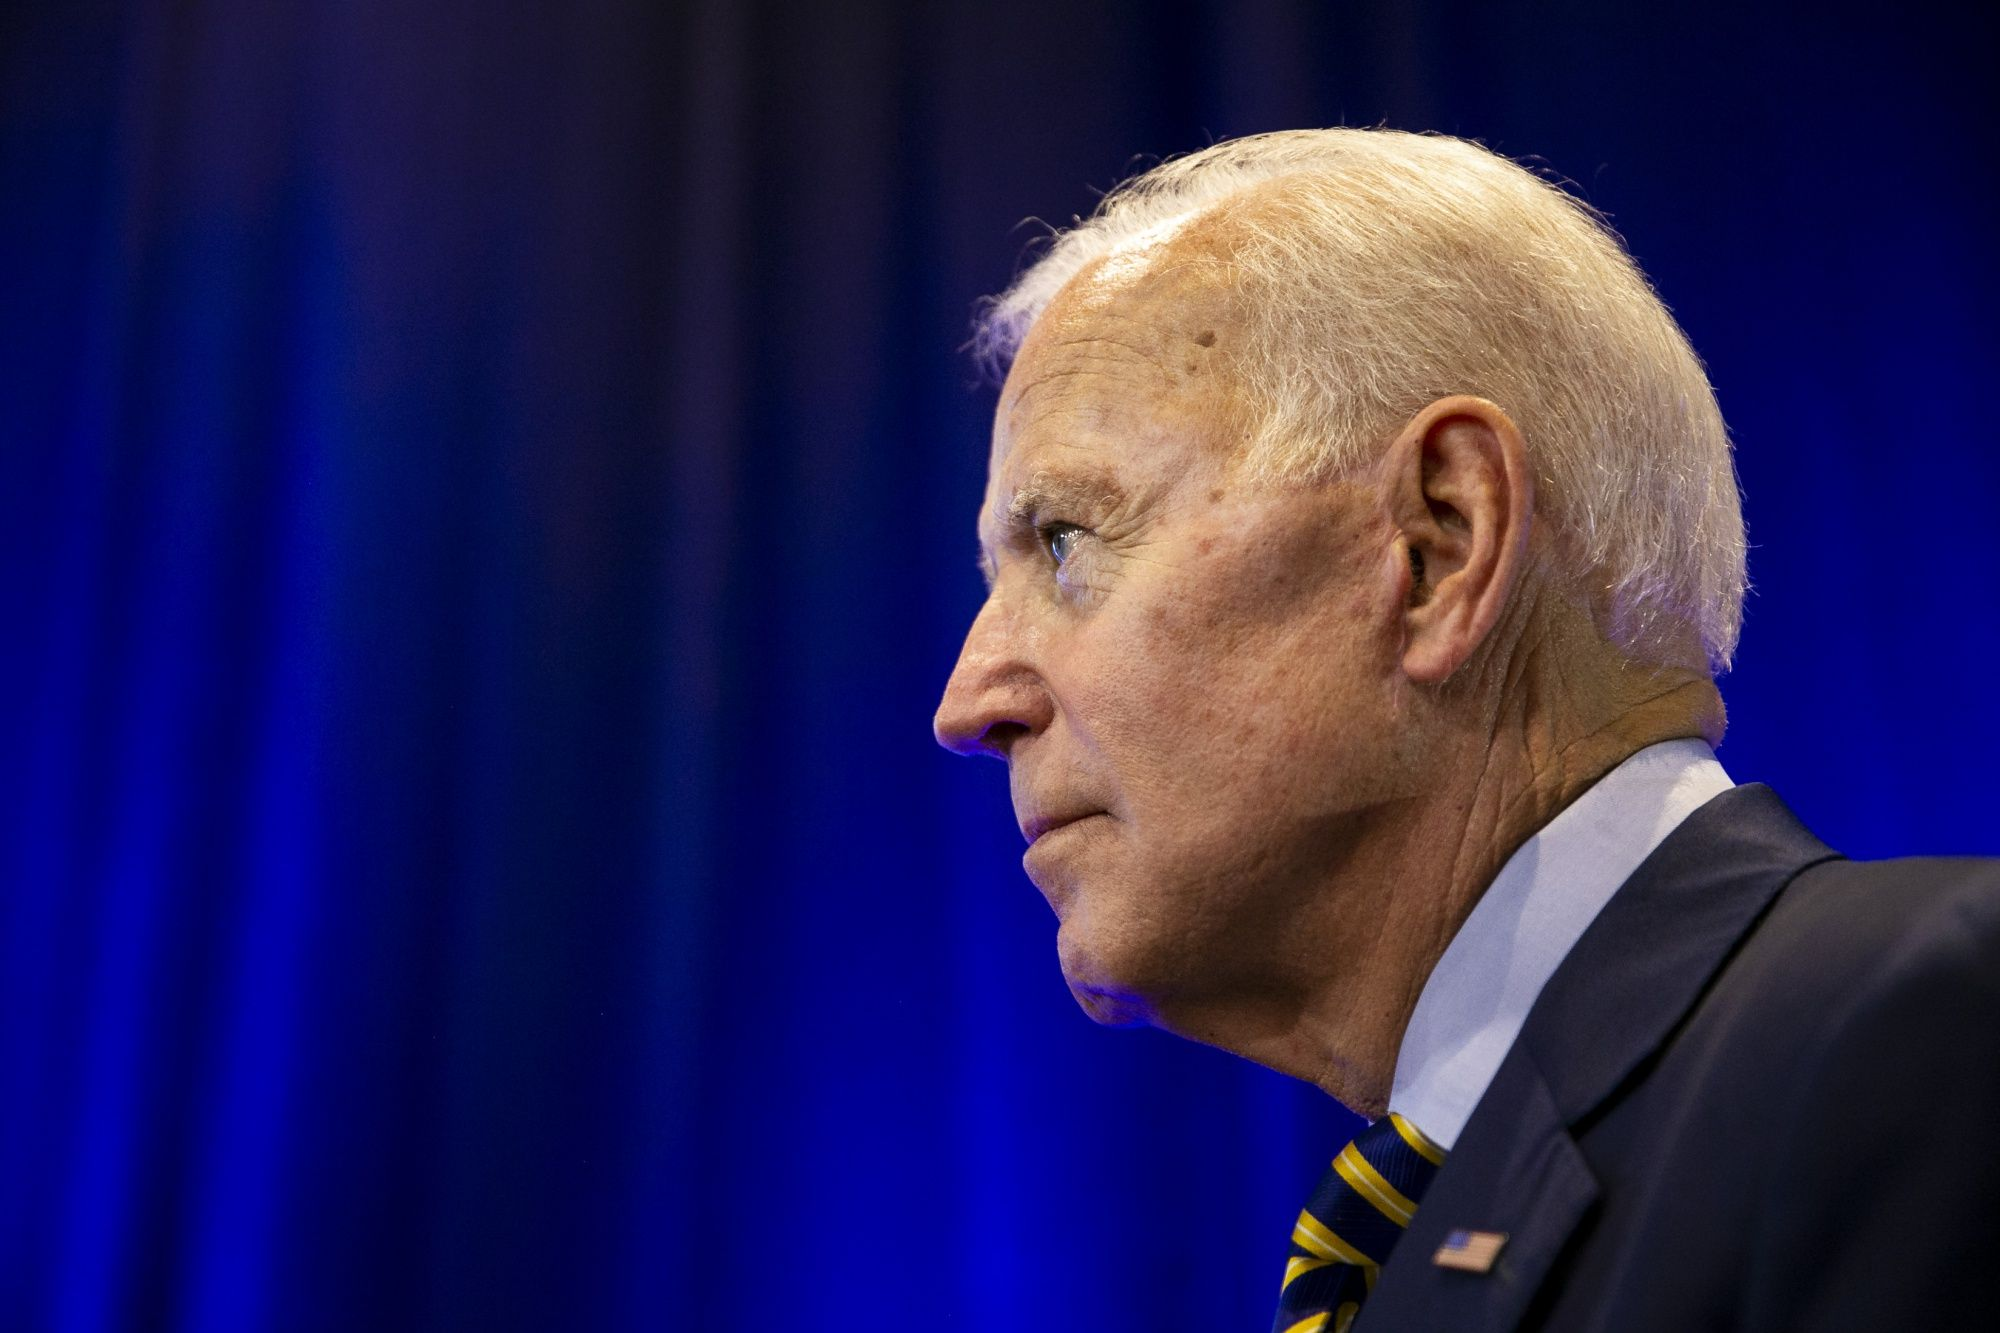 Biden Returns to Campaign Trail With Strong Defense of Obamacare